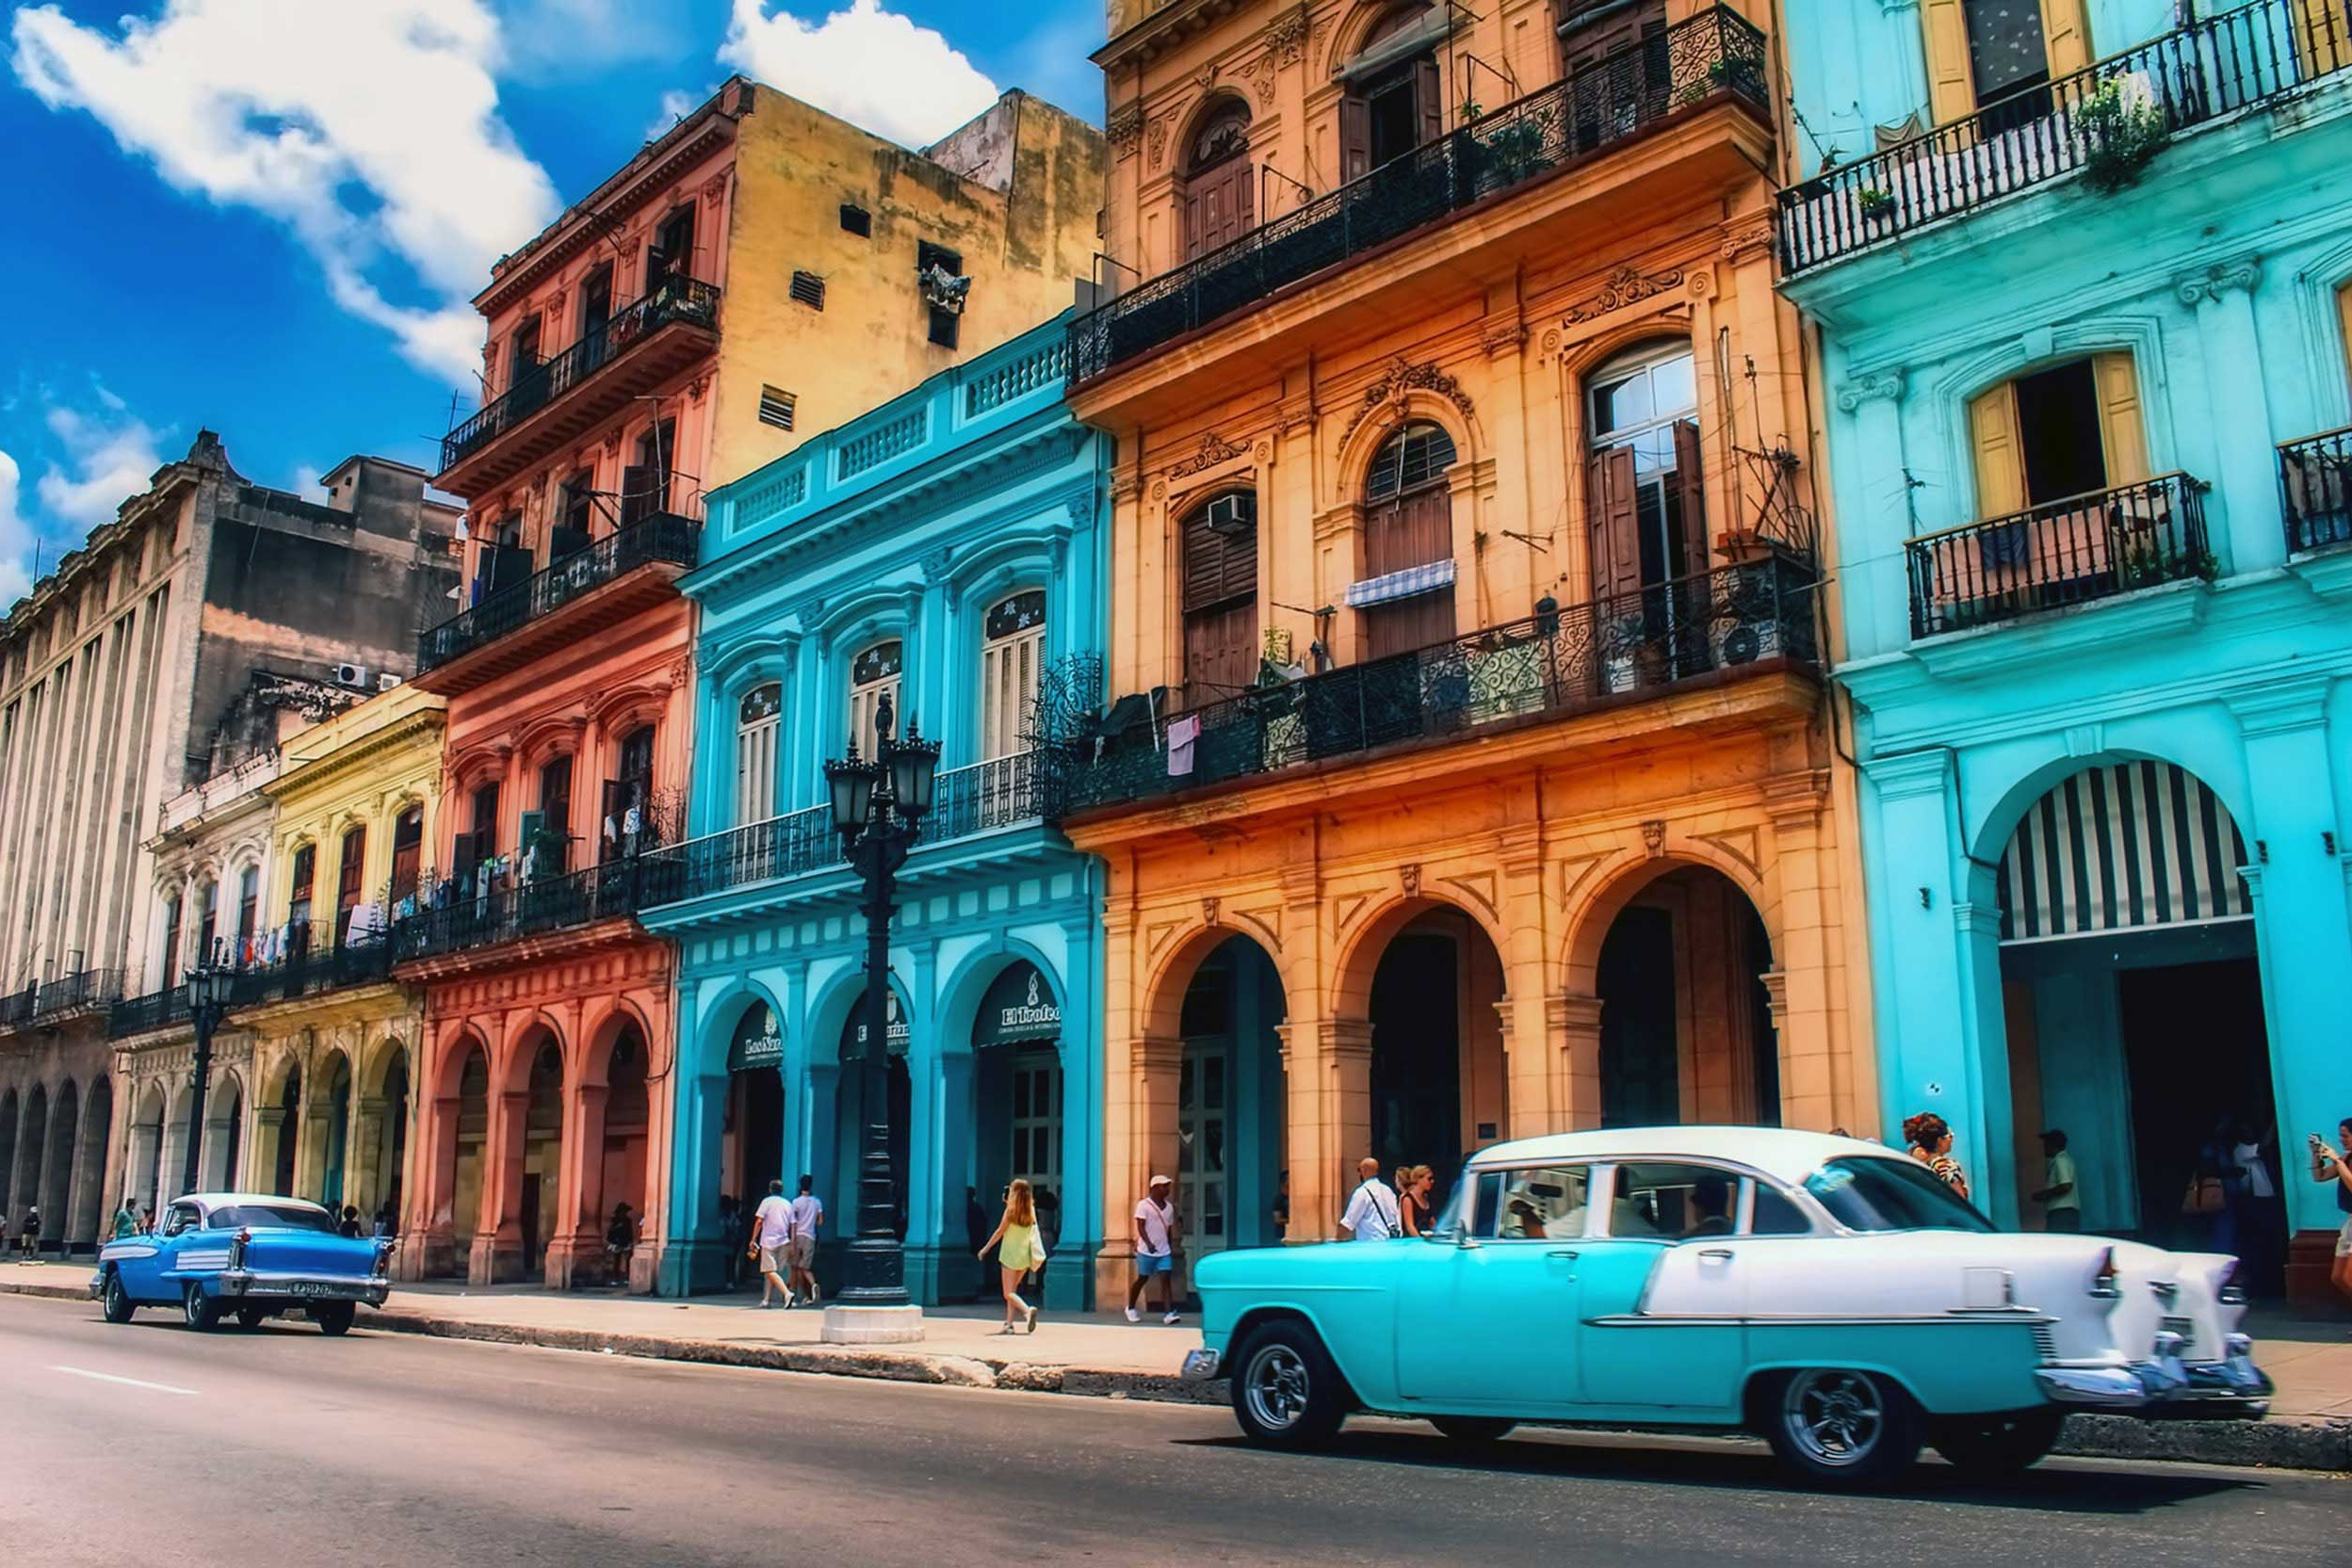 ACT-Cuba-Havana-blue-car-Itinerary.jpg